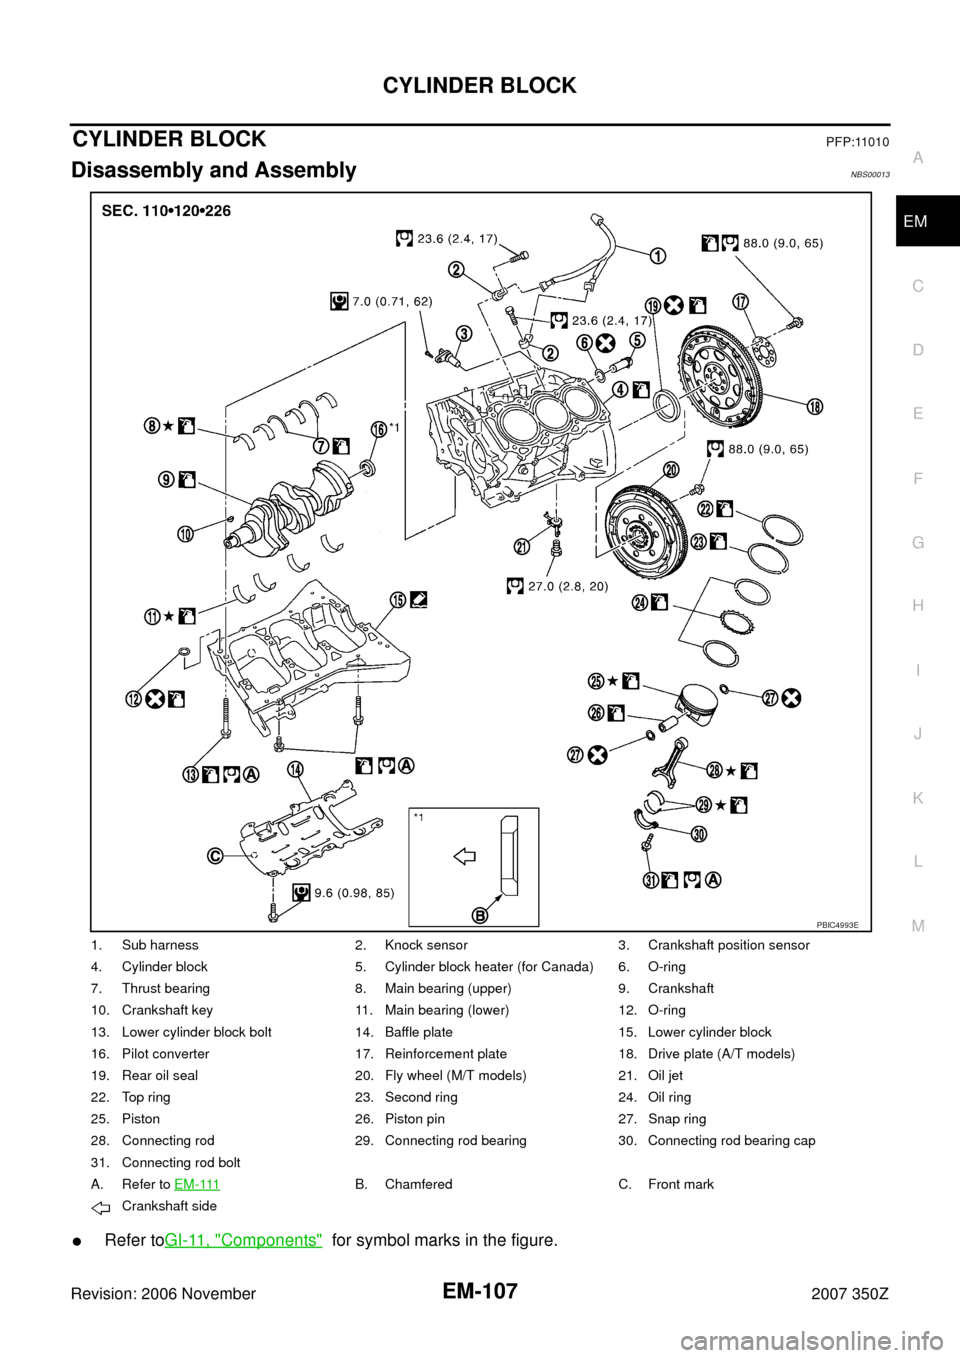 NISSAN 350Z 2007 Z33 Engine Mechanical Workshop Manual